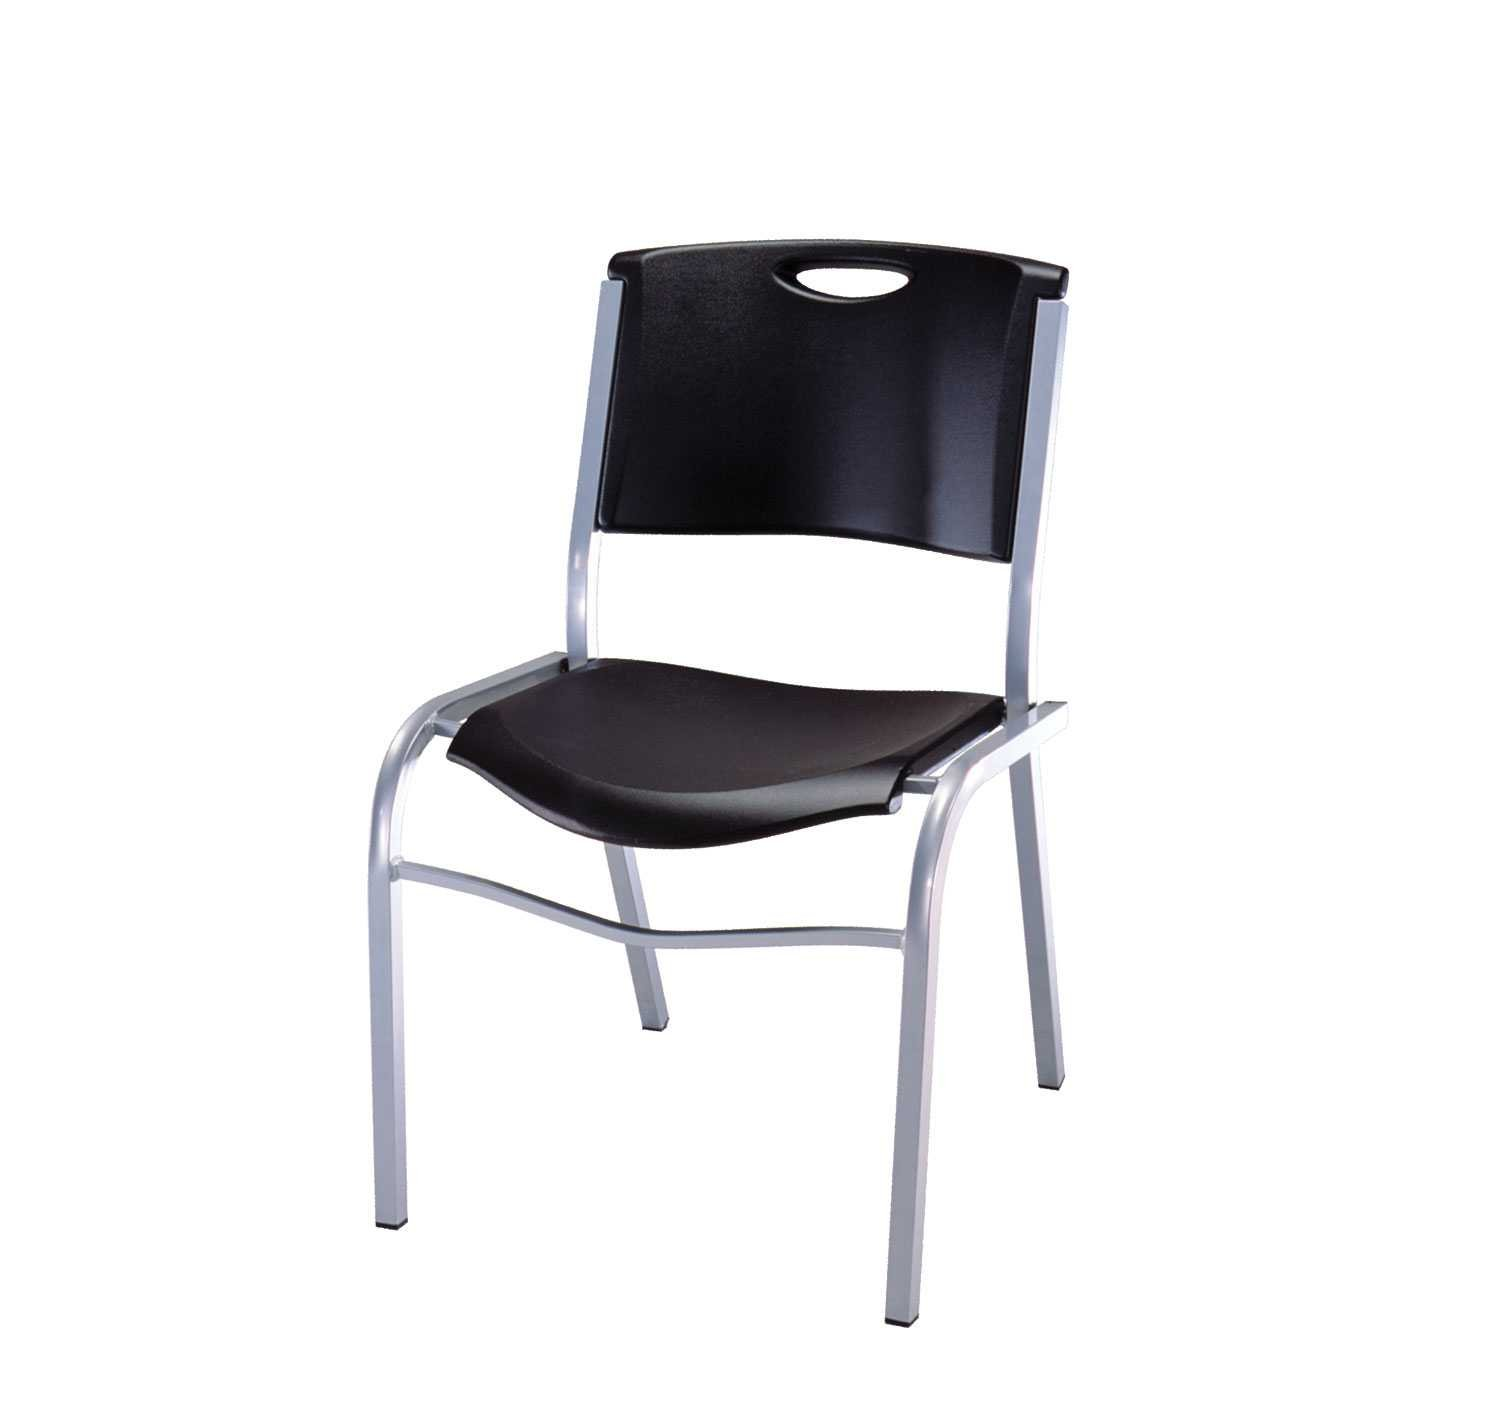 Lifetime 42830 Stacking Chair, Black with Silver Steel Frame, 4 Pack by Lifetime